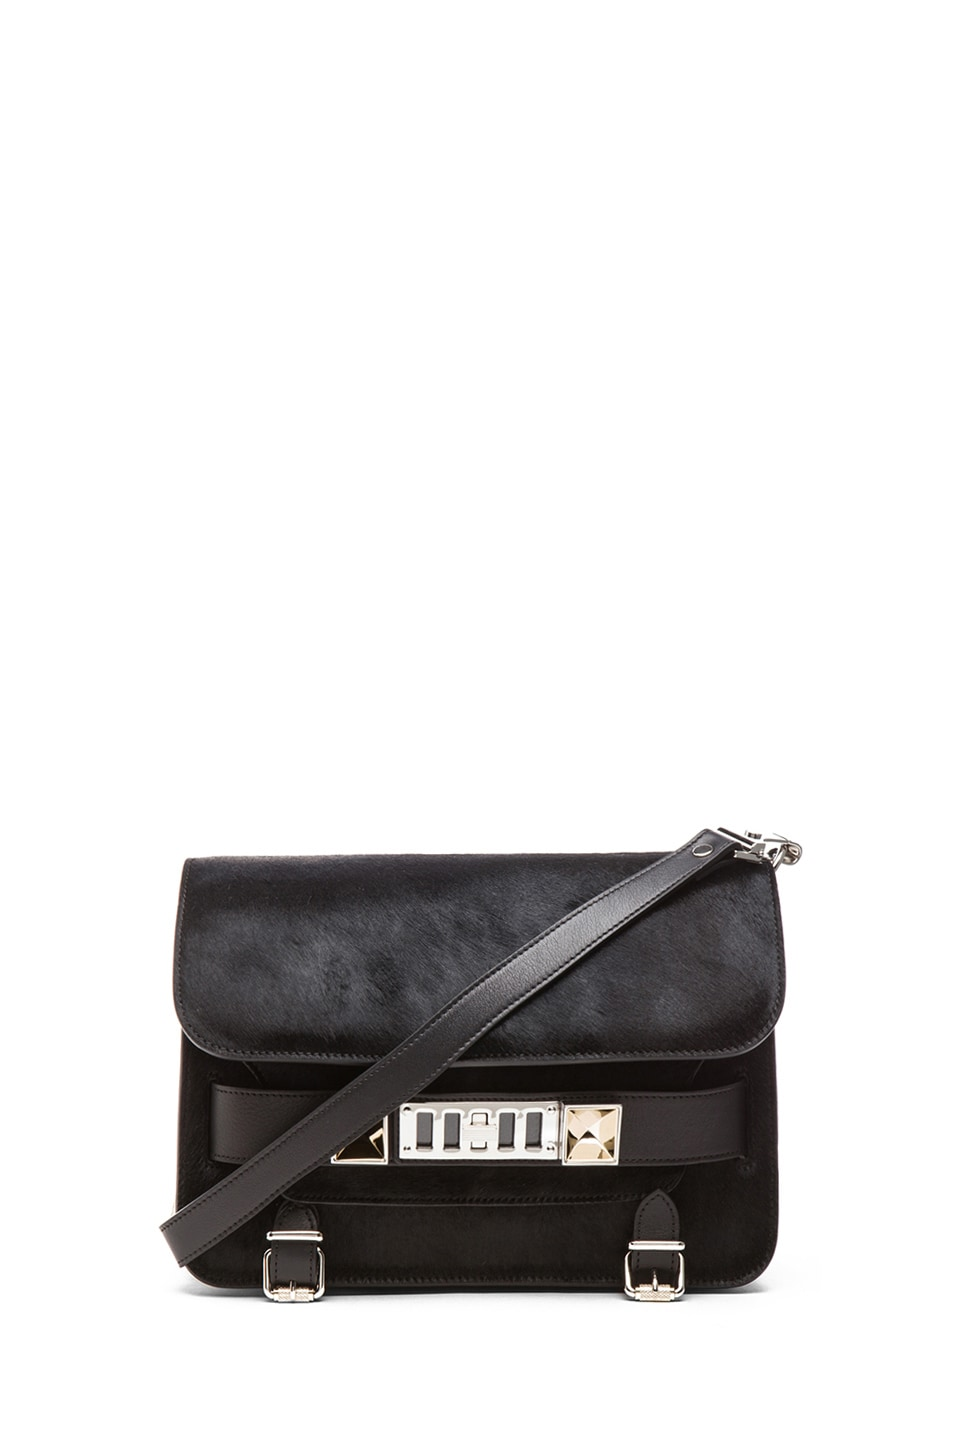 Image 1 of Proenza Schouler PS11 Pony and Leather Classic in Black